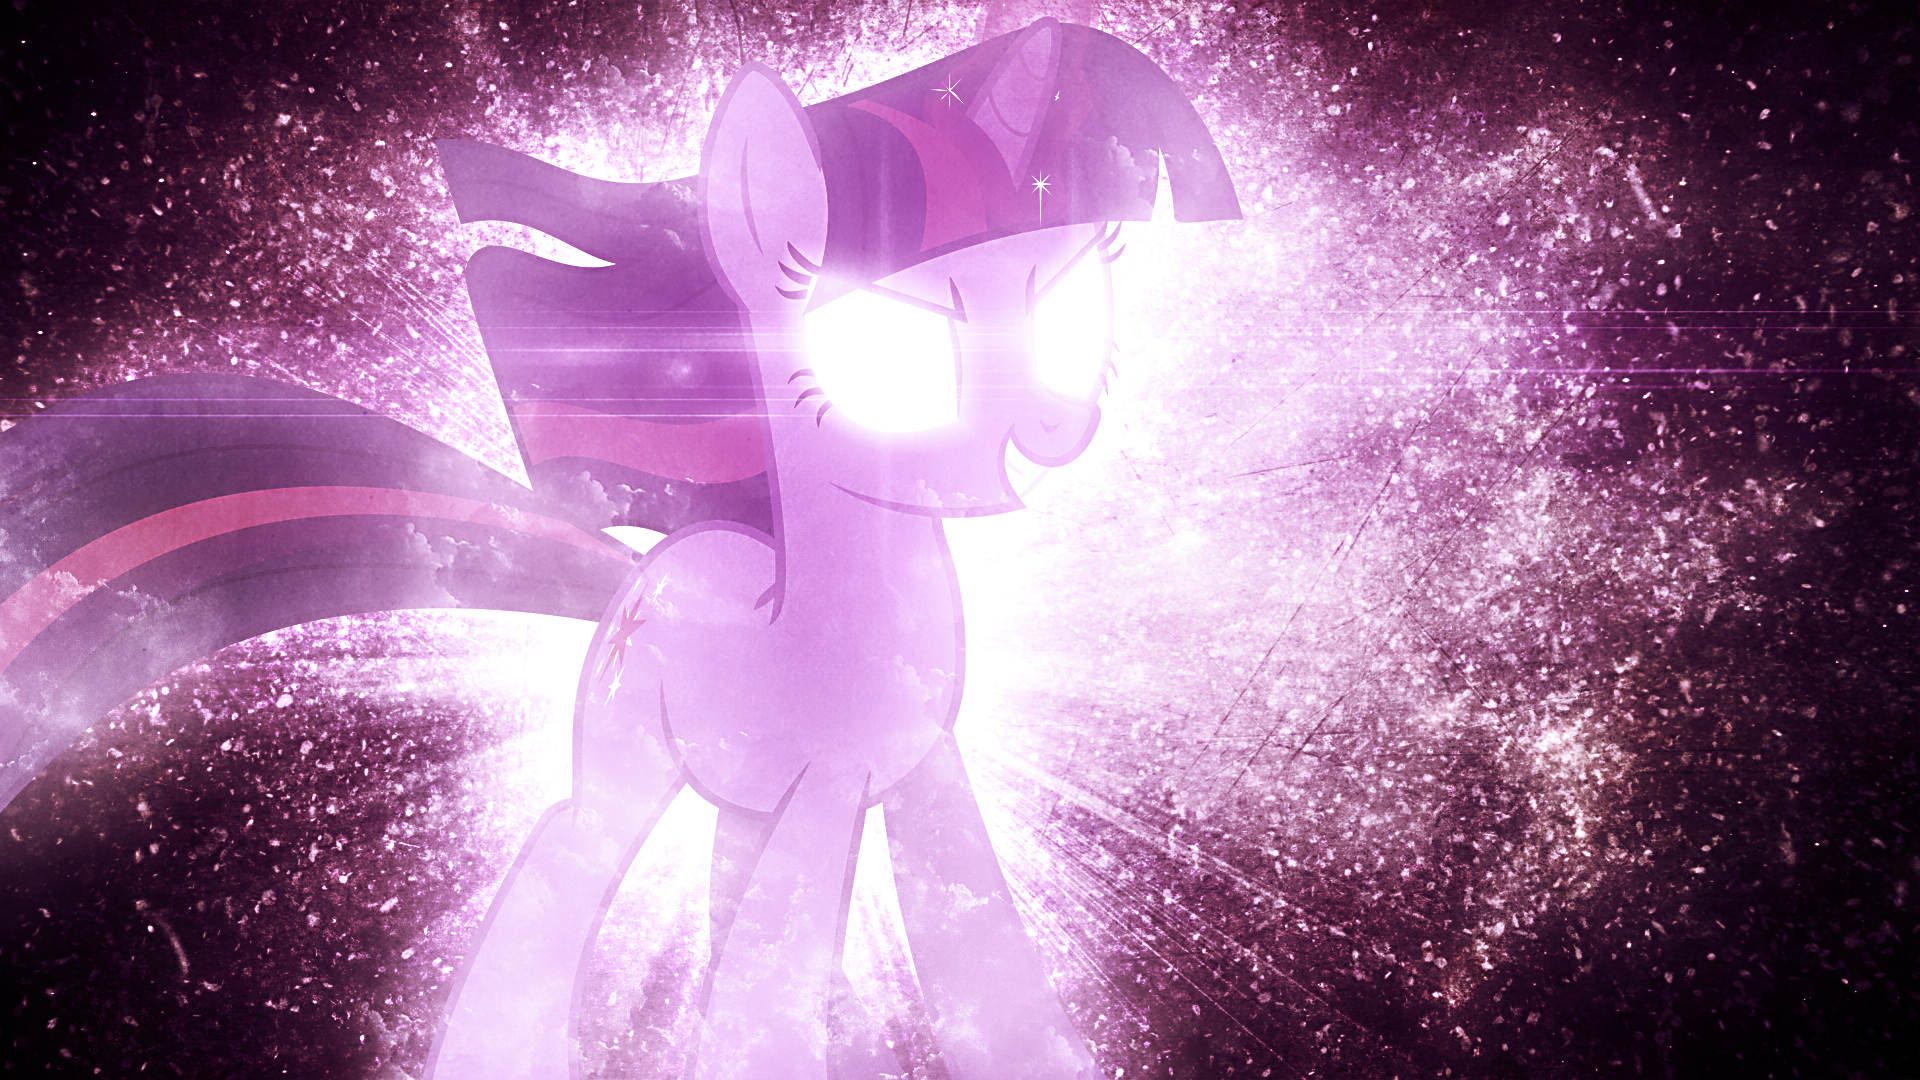 Magic - Wallpaper by Hawk9mm, mewtwo-EX and Tzolkine